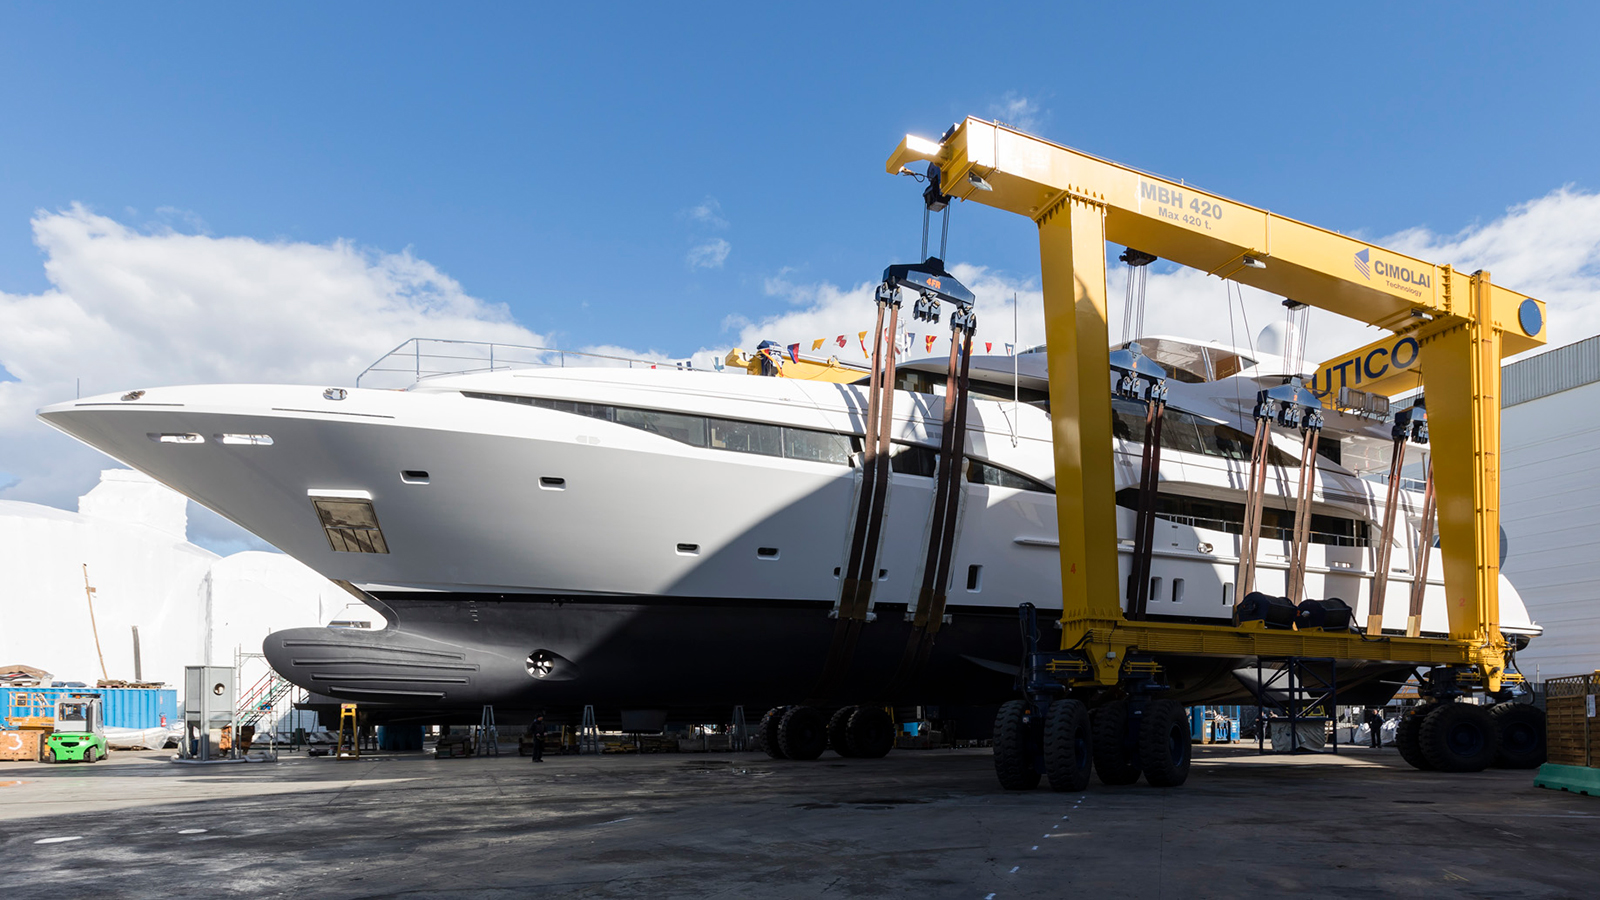 the-mangusta-oceano-46-yacht-was-launched-by-overmarine-in-march-2018